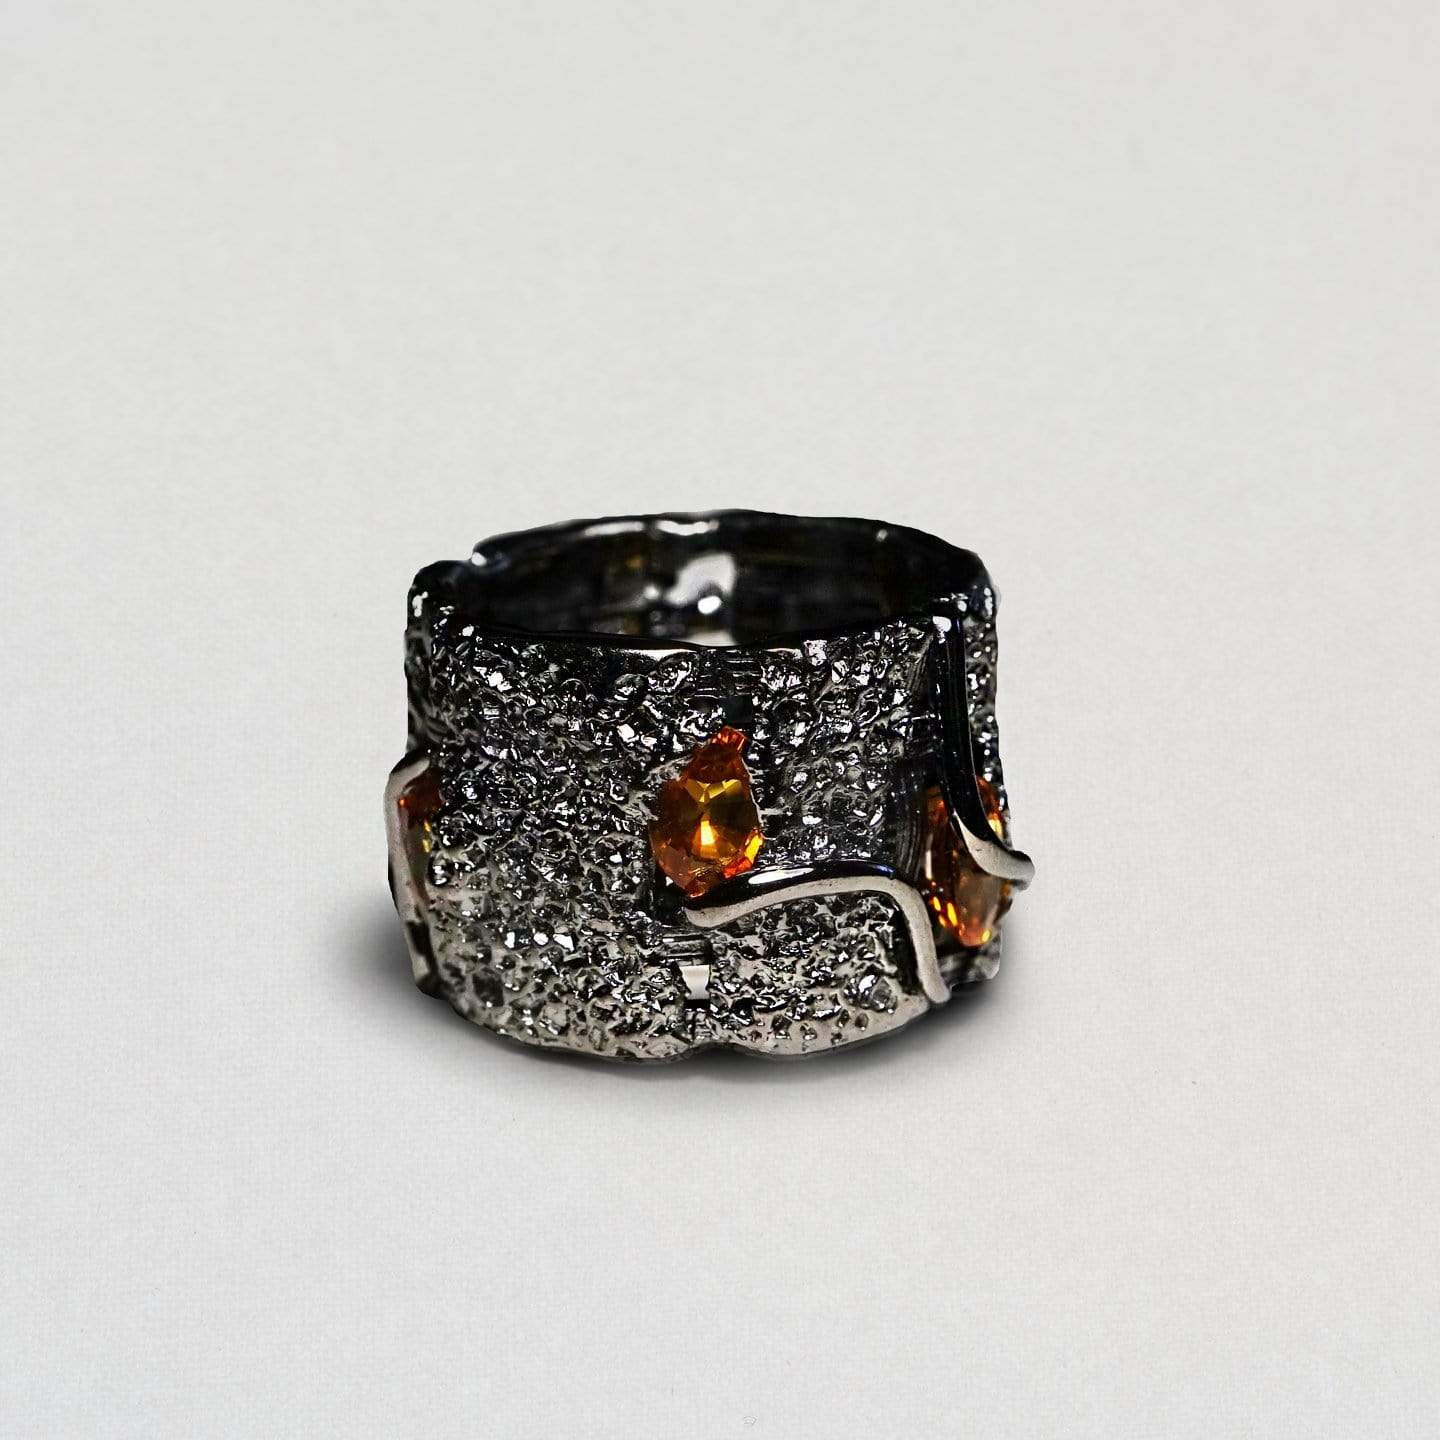 Hamadia Ring, Exclusive, gray, Rhodium, Sapphire, StoneColor:Orange, Style:Everyday, Type:StoneCandyScattered Ring